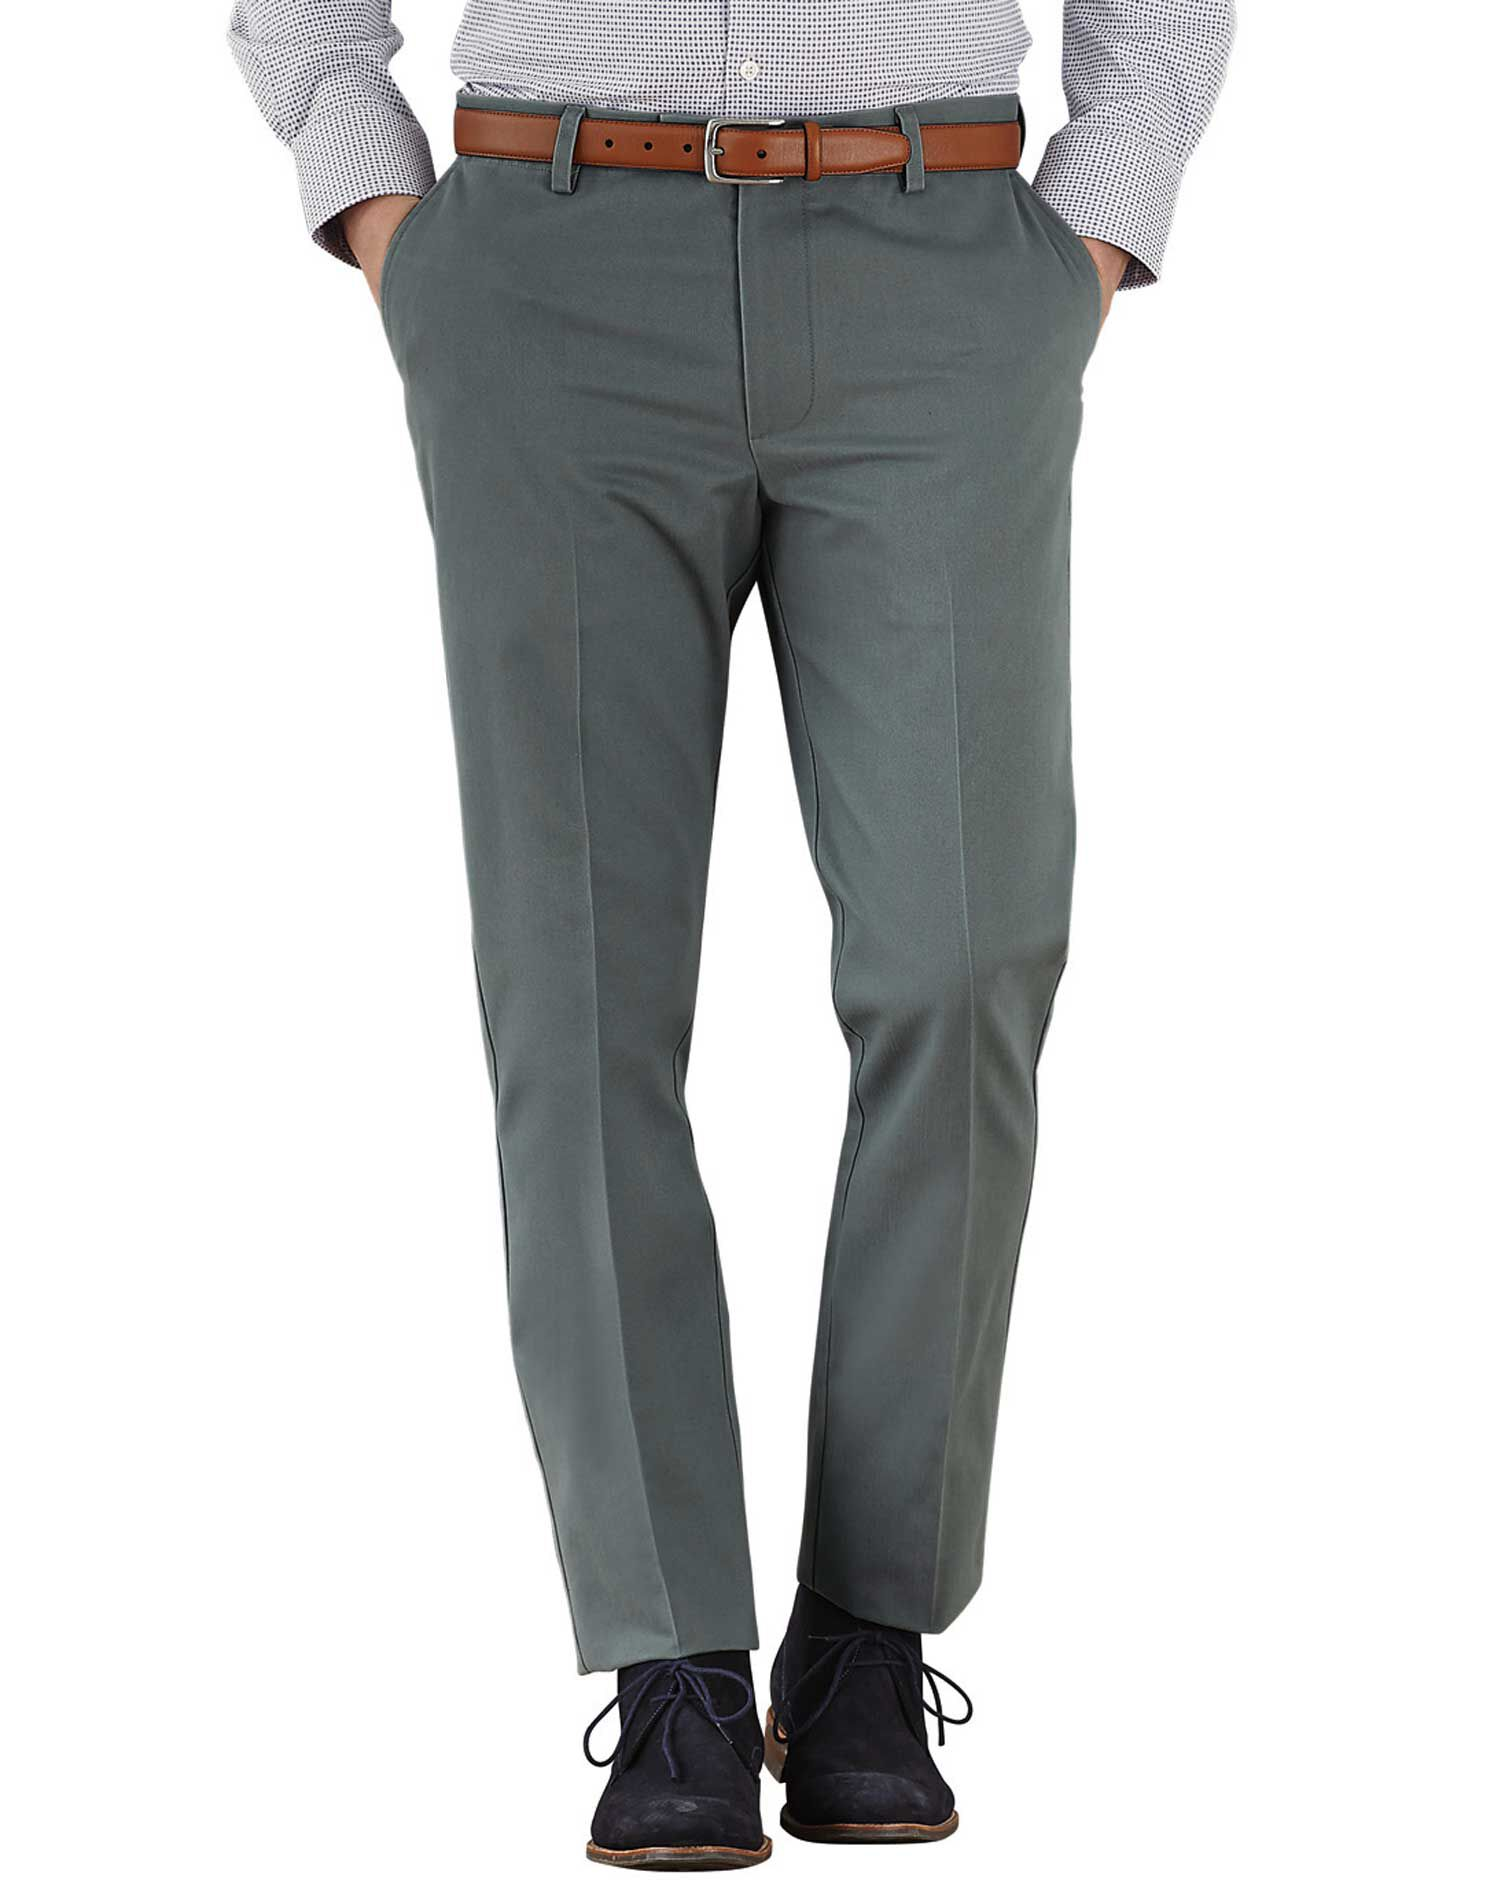 Grey Extra Slim Fit Flat Front Non-Iron Cotton Chino Trousers Size W30 L32 by Charles Tyrwhitt